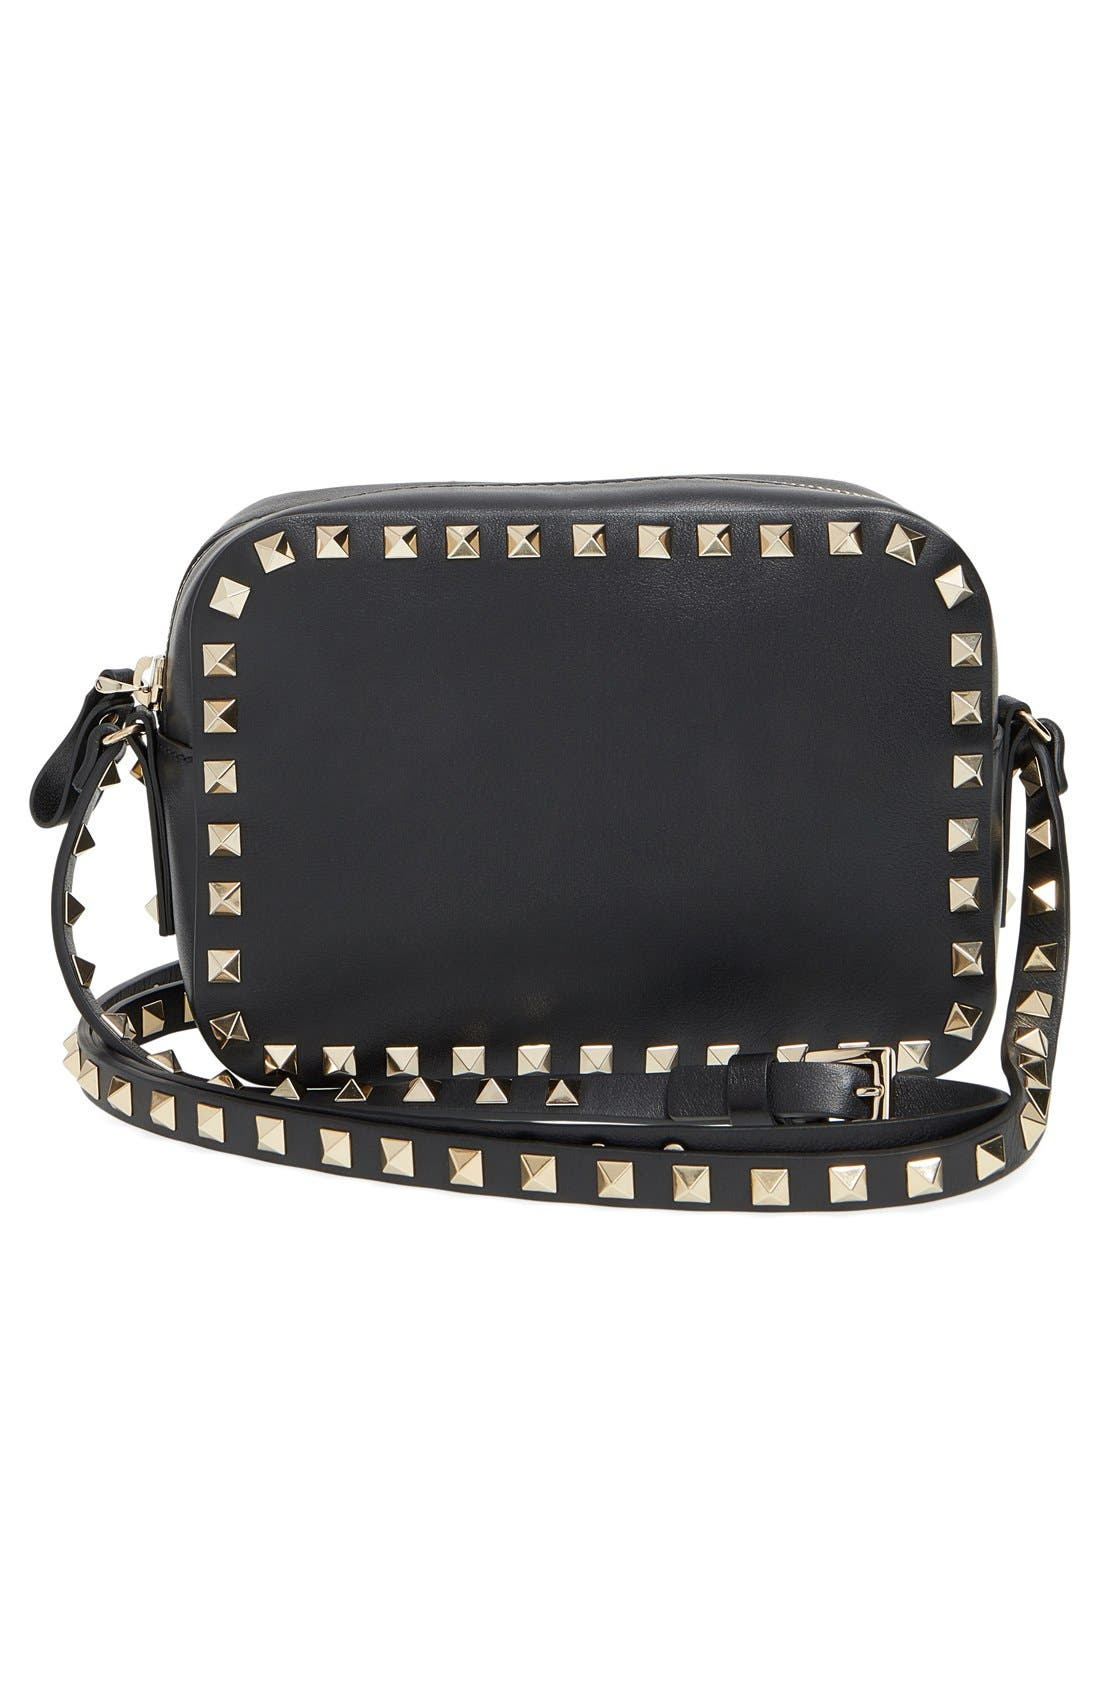 Main Image - VALENTINO GARAVANI 'Rockstud' Calfskin Leather Camera Crossbody Bag